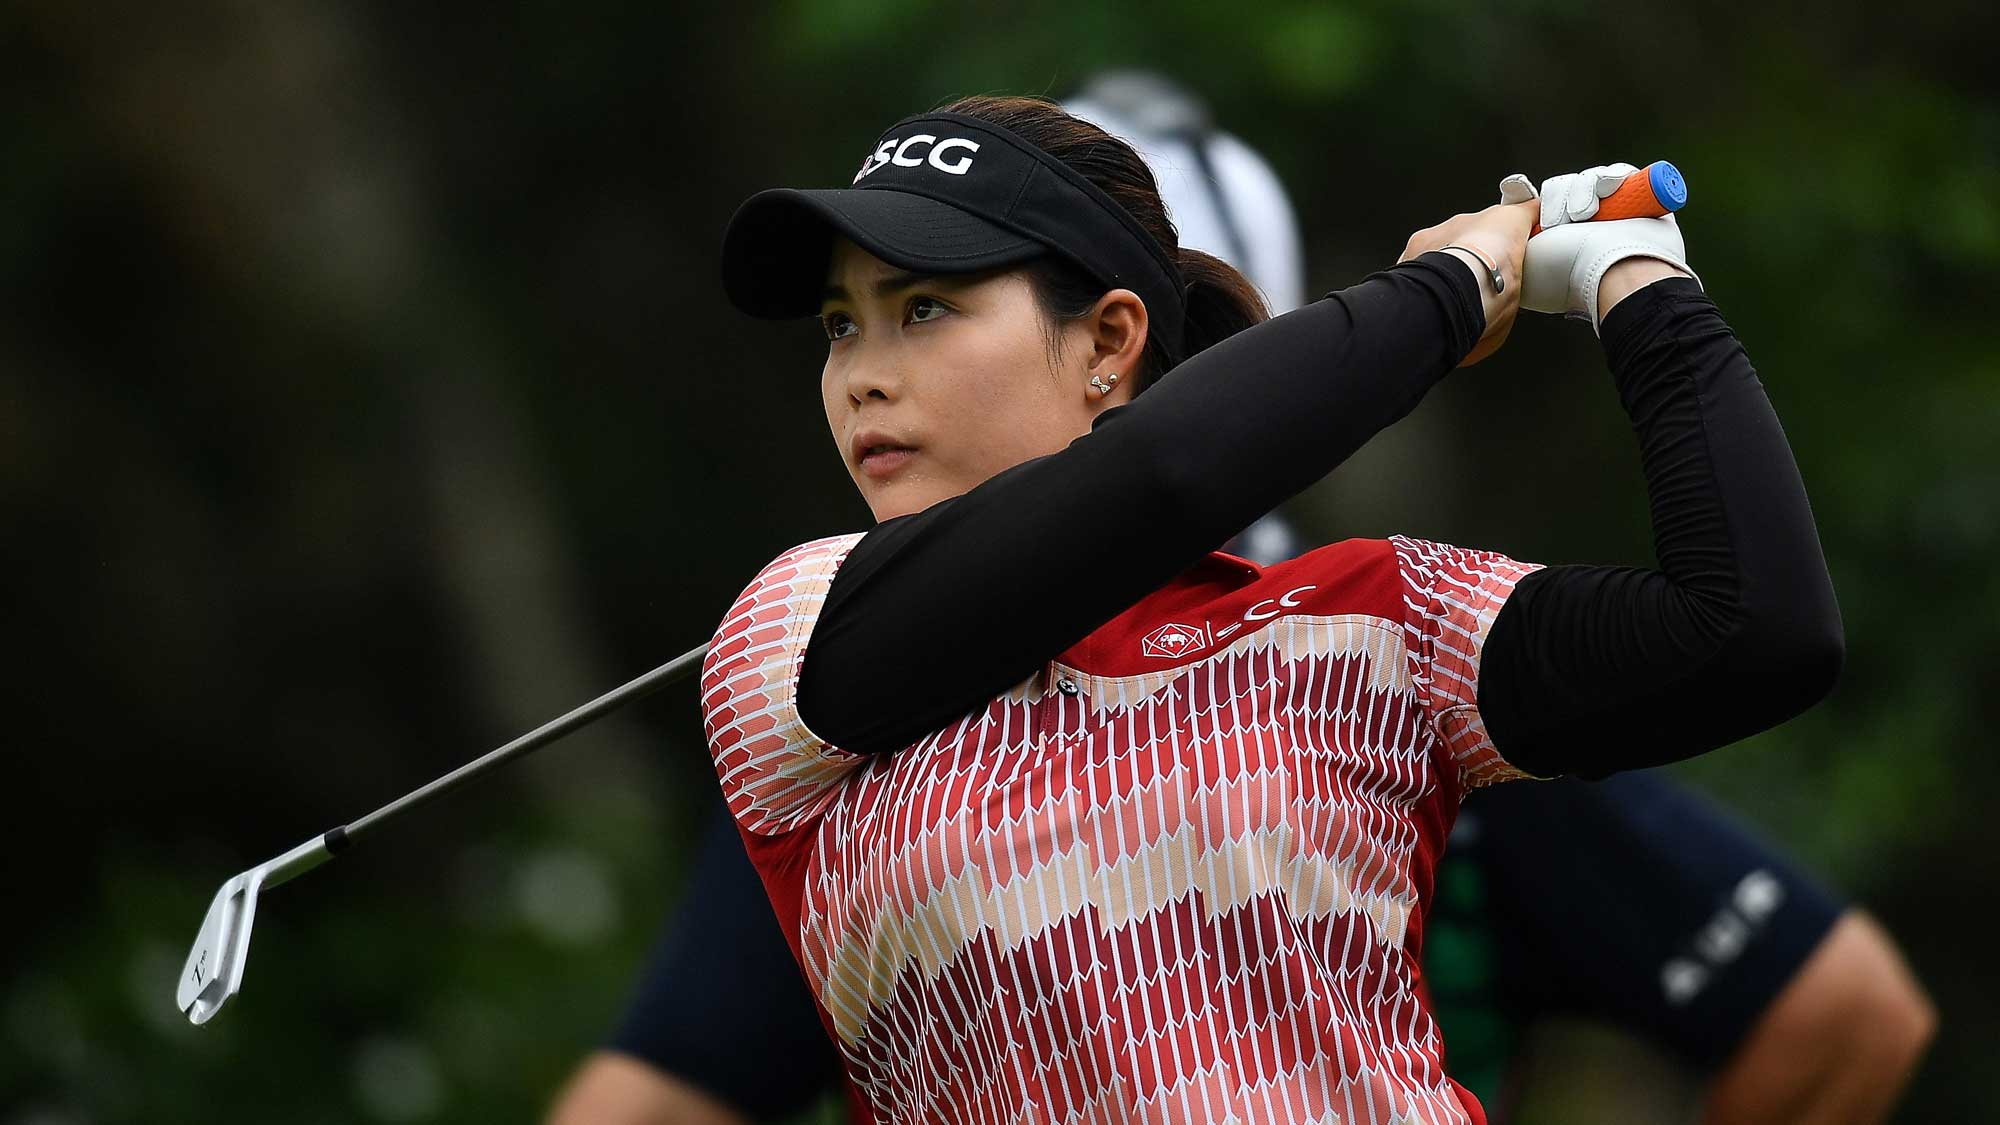 Moriya Jutanugarn Holes Out on 14 in Thailand